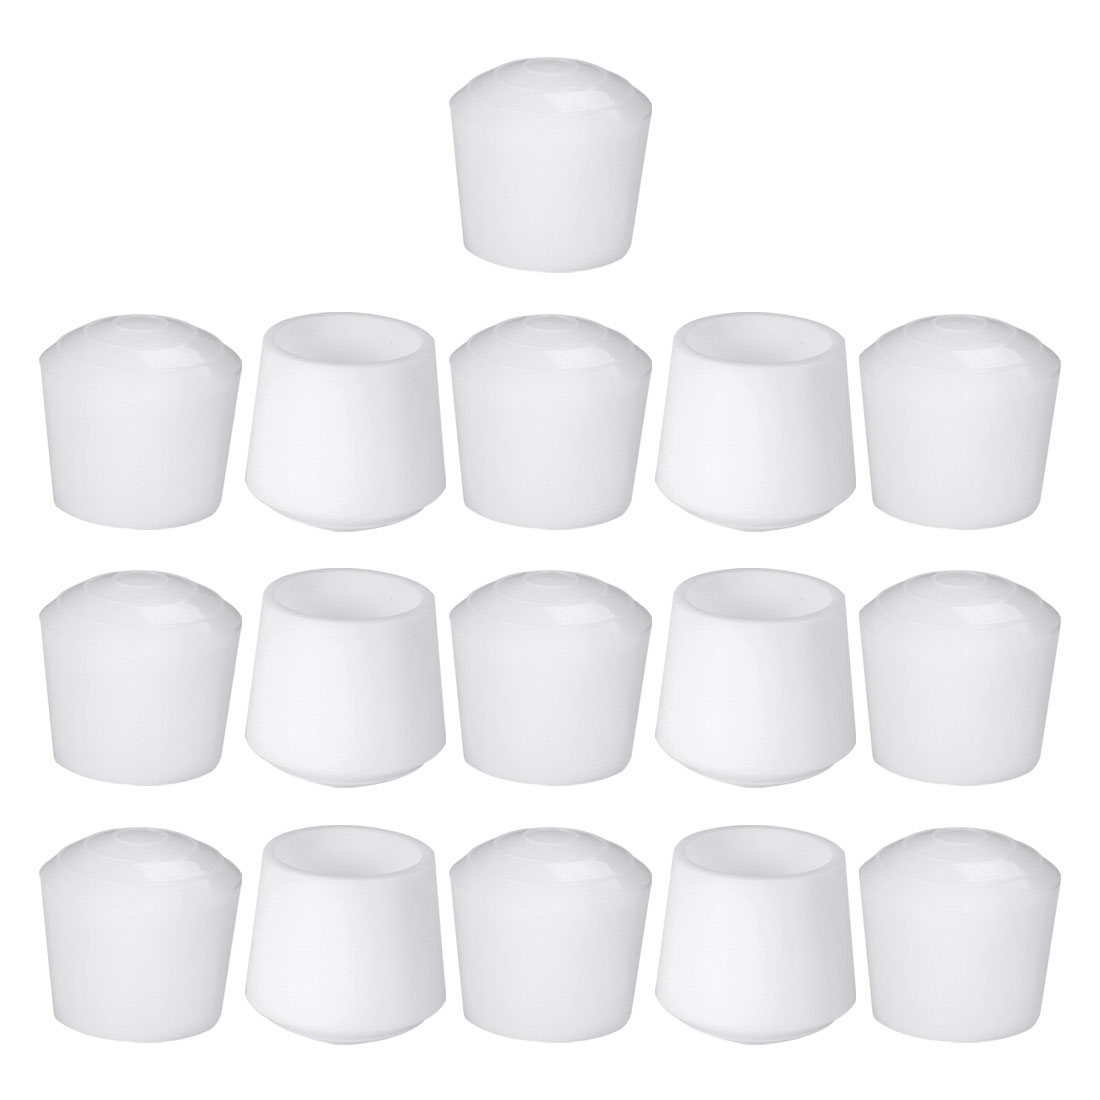 "Rubber Leg Cap Cups Feet Cover 32mm 1 1/4"" Inner Dia 16pcs for Furniture Desk - image 7 of 7"